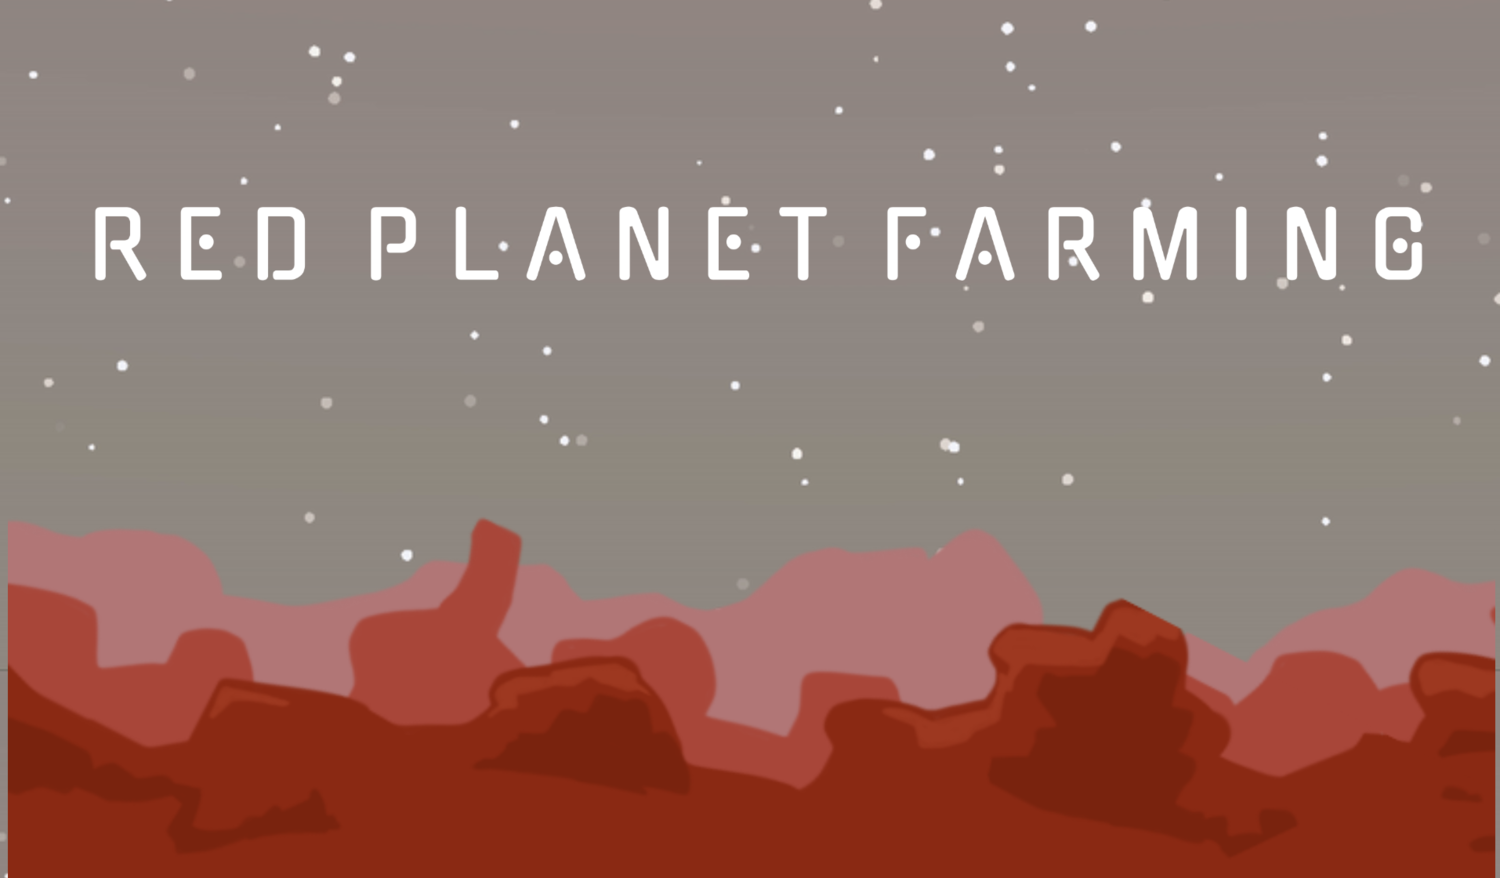 RSVP:  https://withfriends.co/event/2819089/dbaa_plays_red_planet_farming